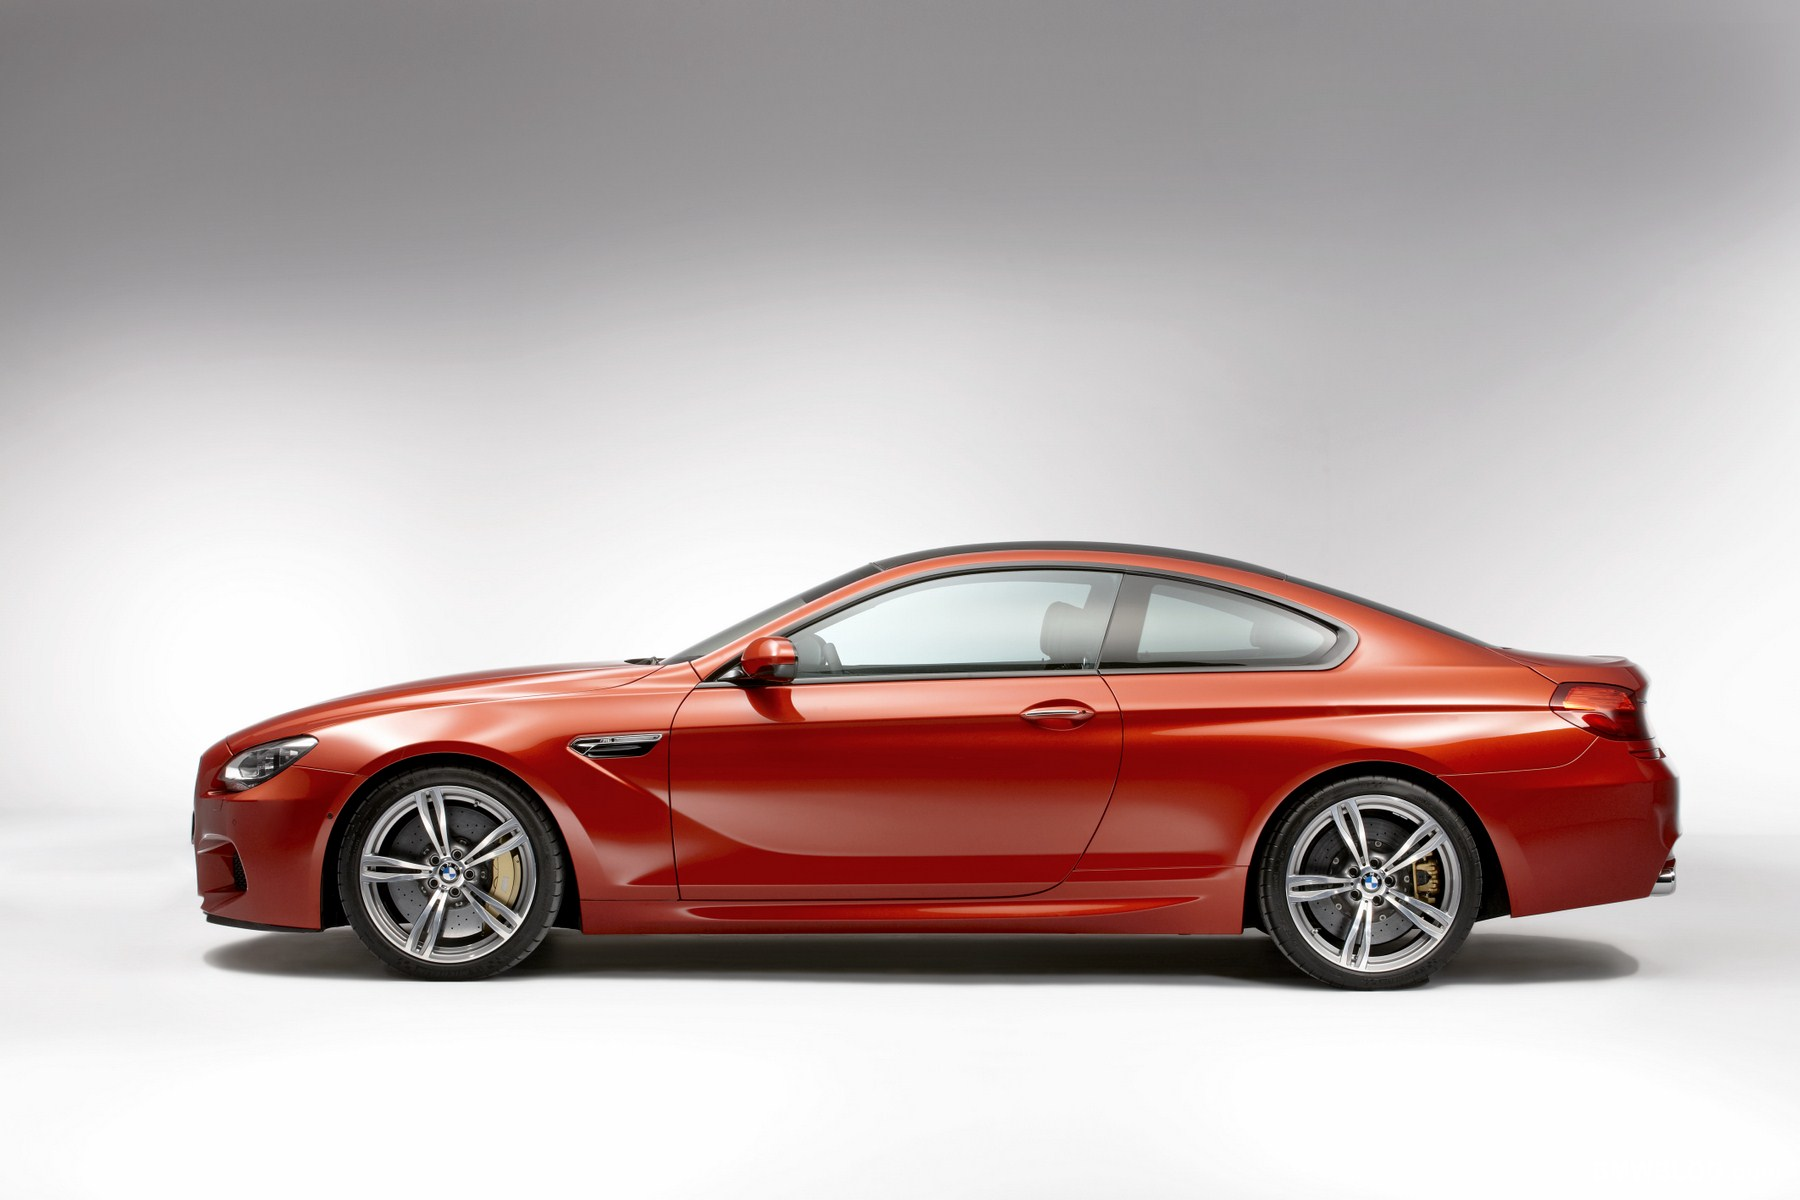 2013 BMW M6 Coupe_d0038951_11502284.jpg